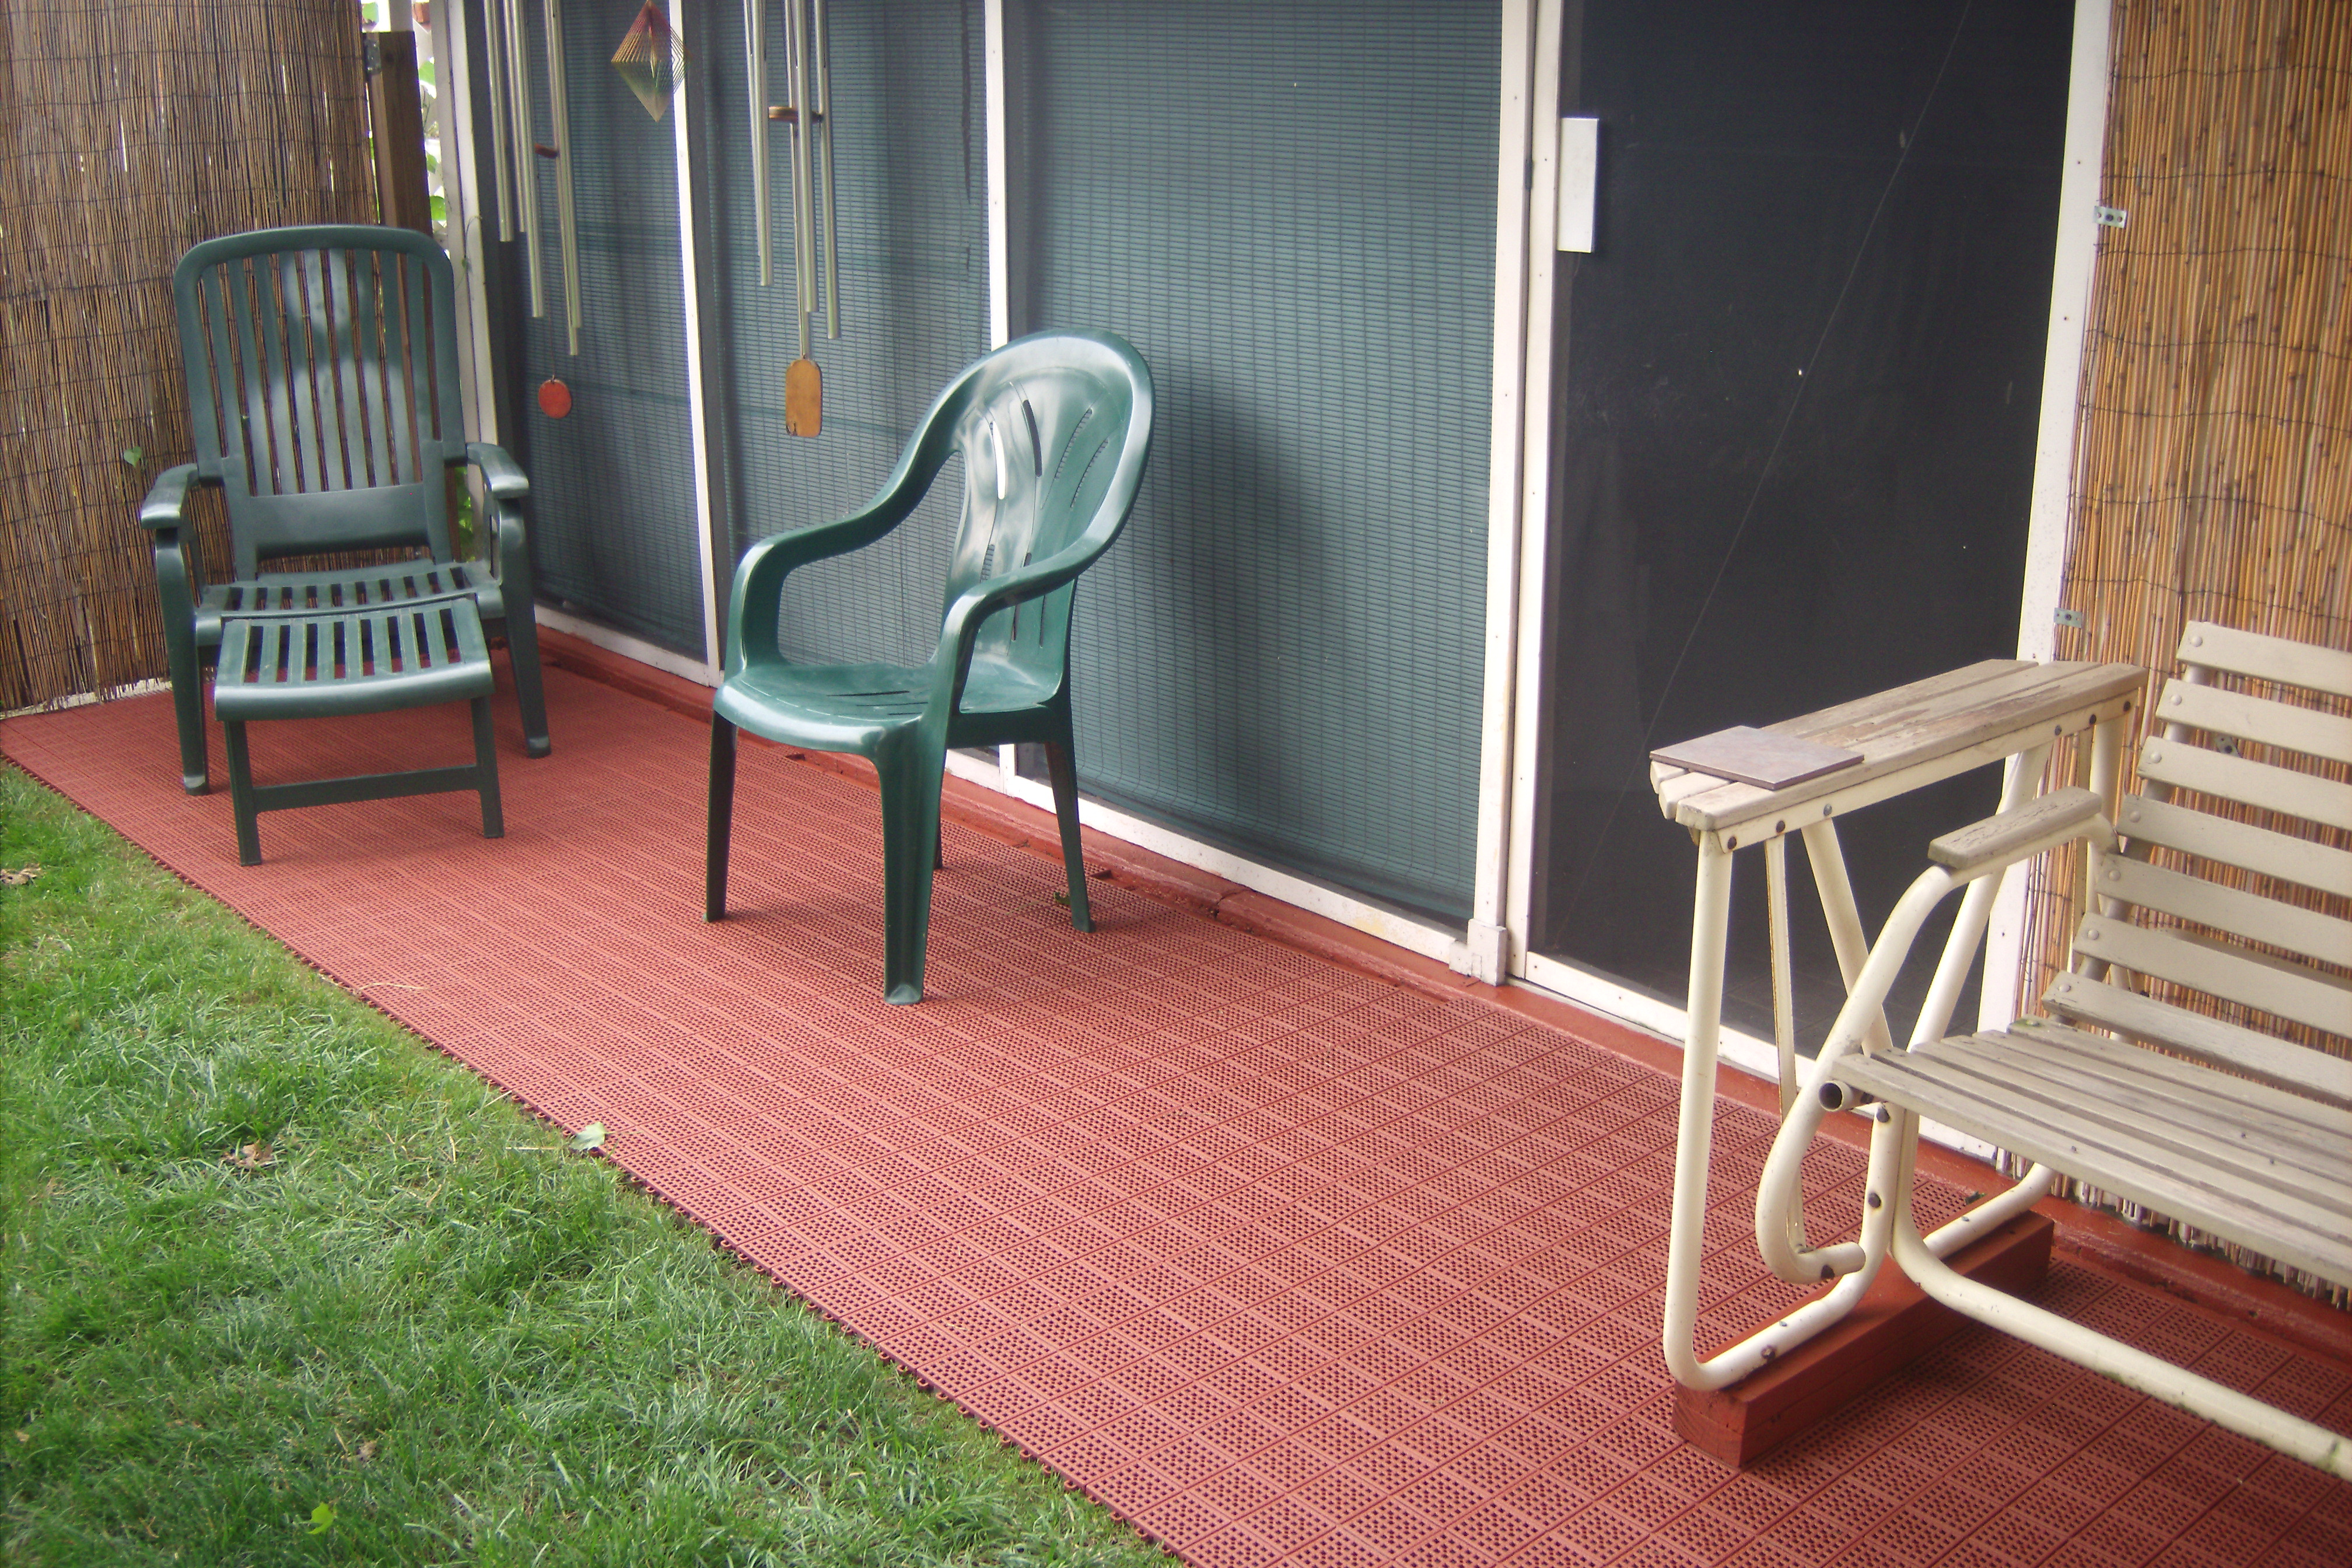 Patio tiles interlocking patio tiles outdoor floor click to view full size photo ppazfo